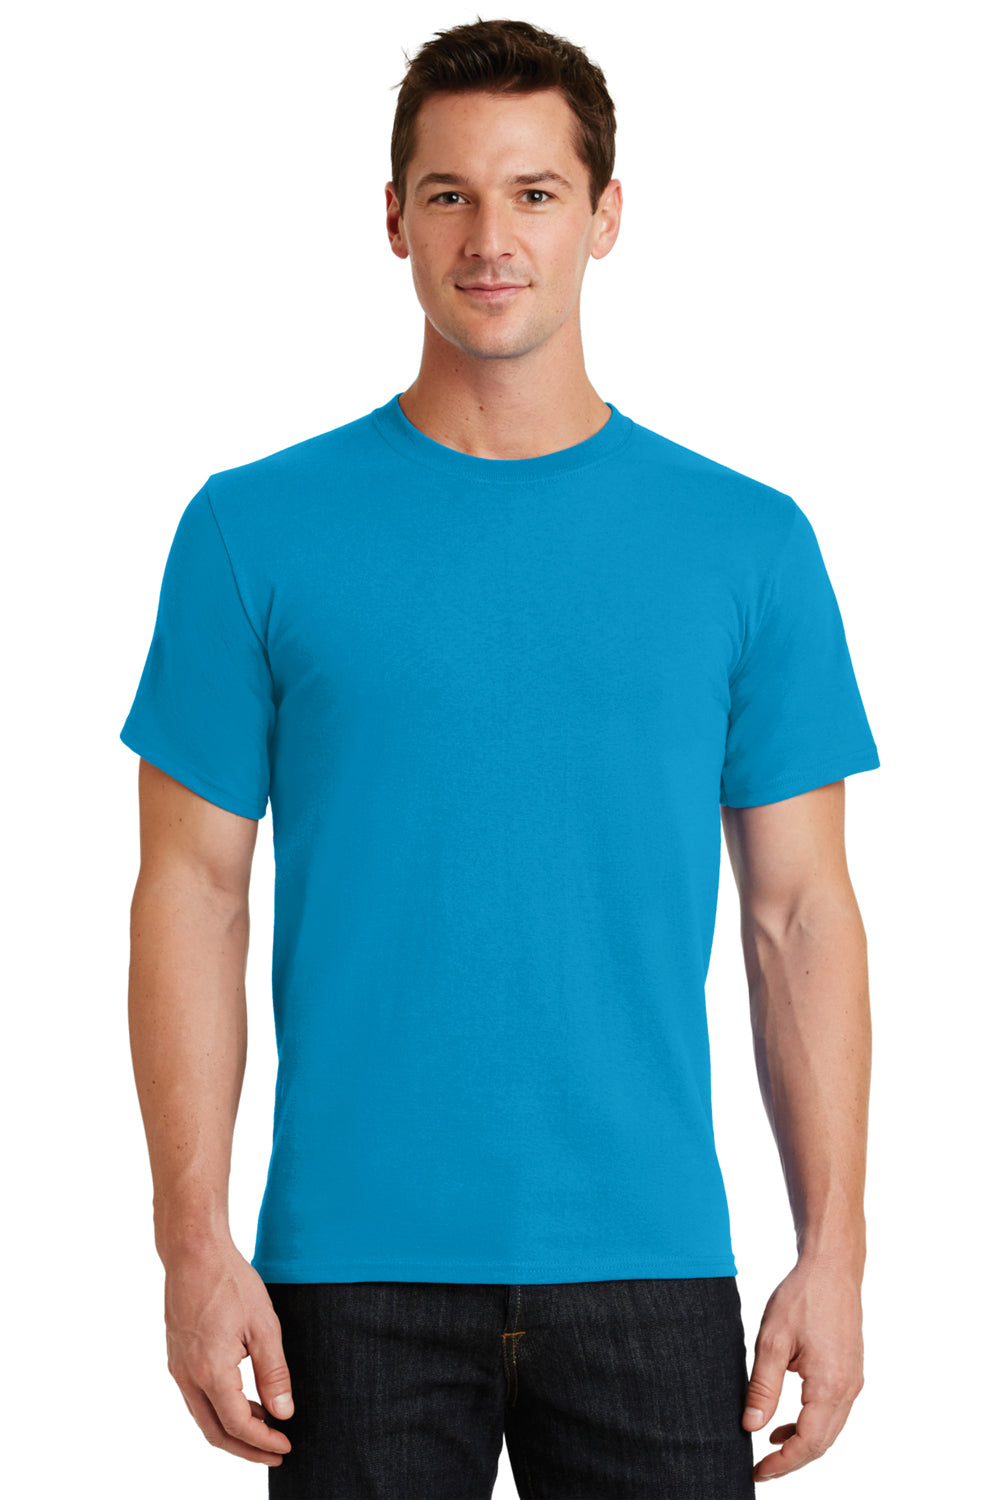 Port & Company PC61 Mens Essential Short Sleeve Crewneck T-Shirt Turquoise Blue Front